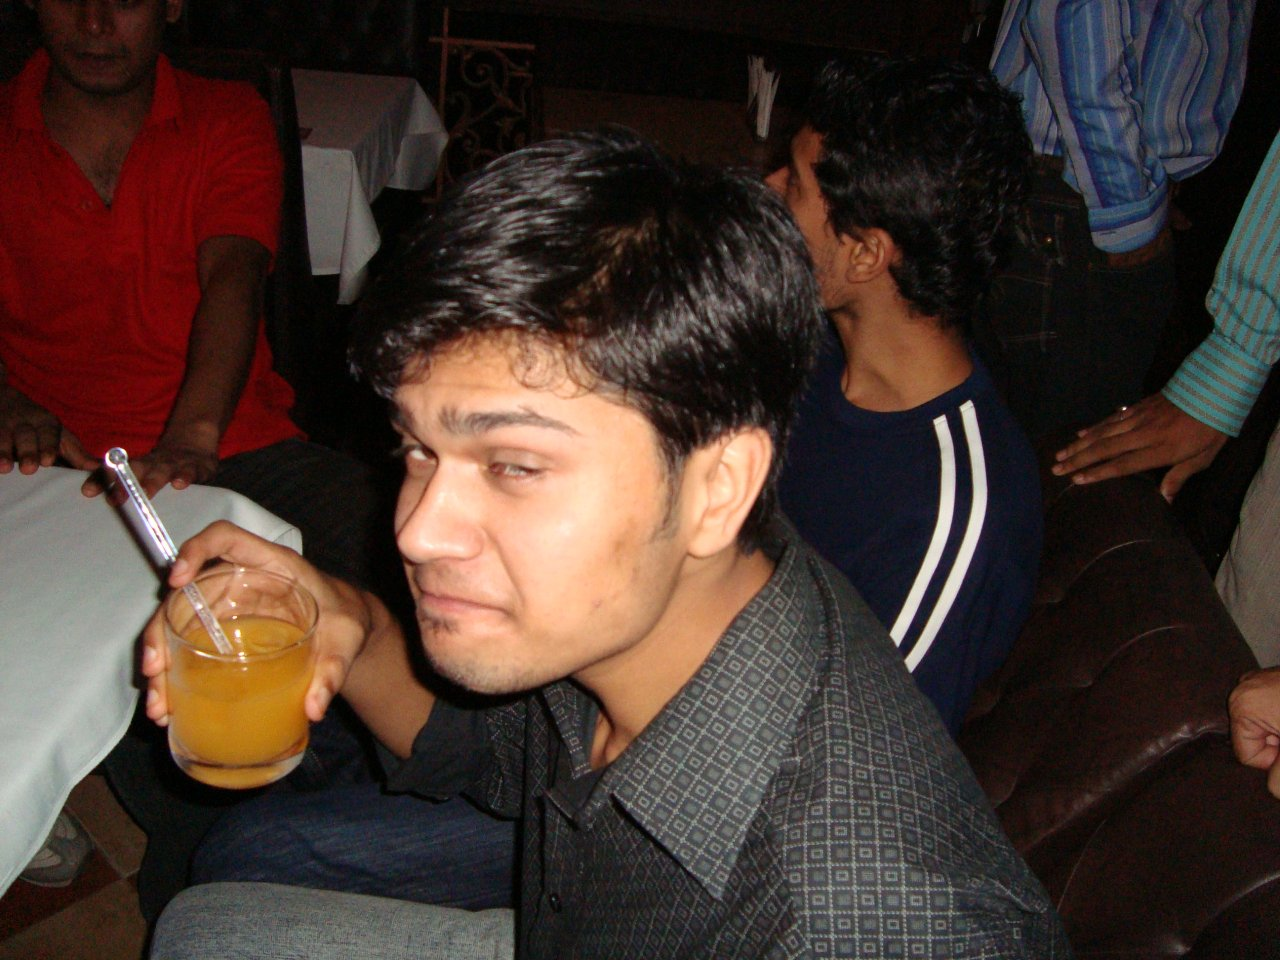 Somani Birthday at Club8 - Sachin Goyal